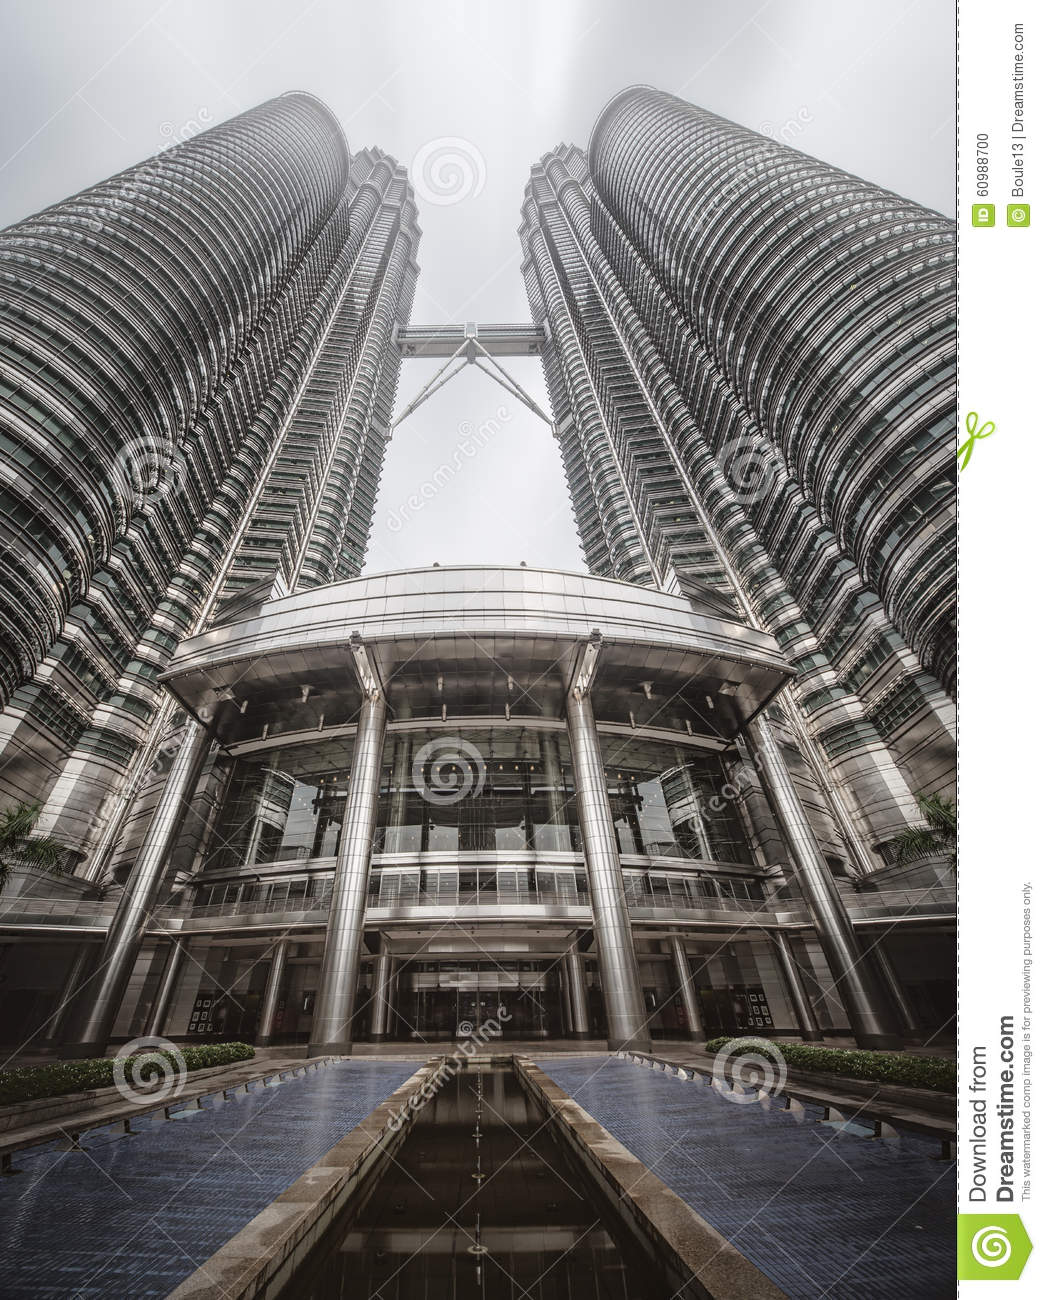 Architecture Photography Malaysia modern architecture of malaysia stock photo - image: 60988700